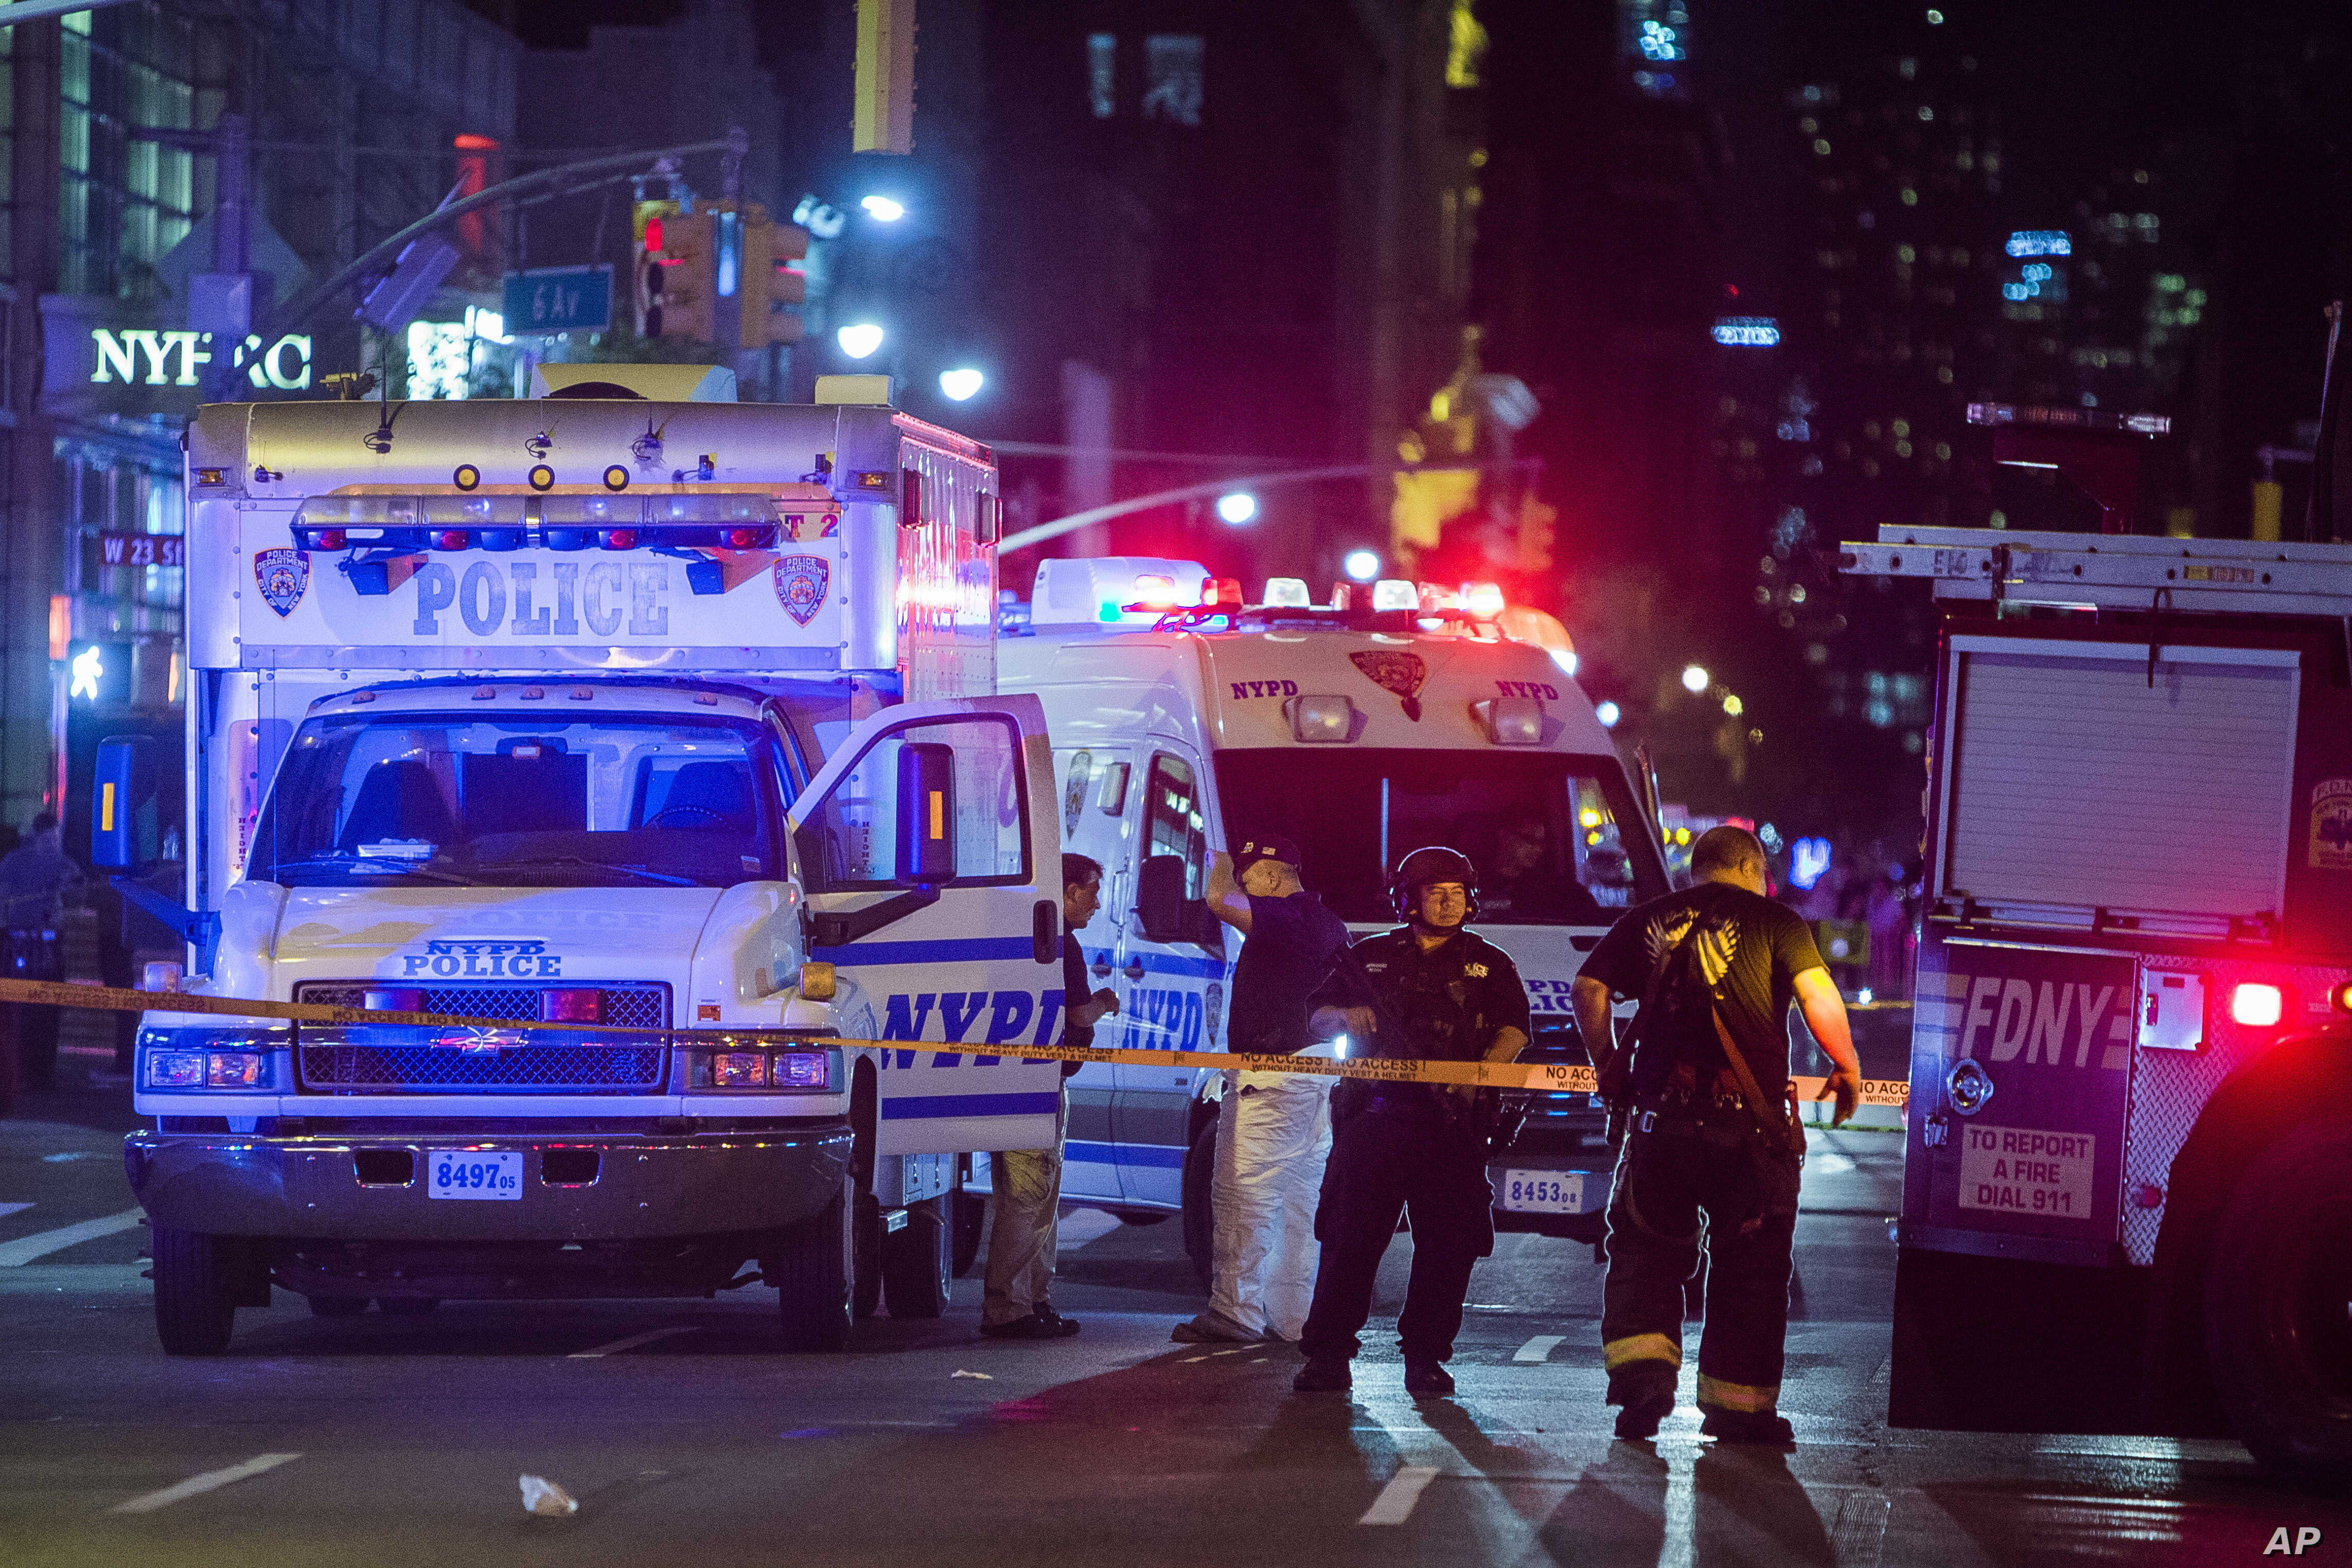 Police and firefighters work near to the scene in Manhattan, New York, Sept. 17, 2016.